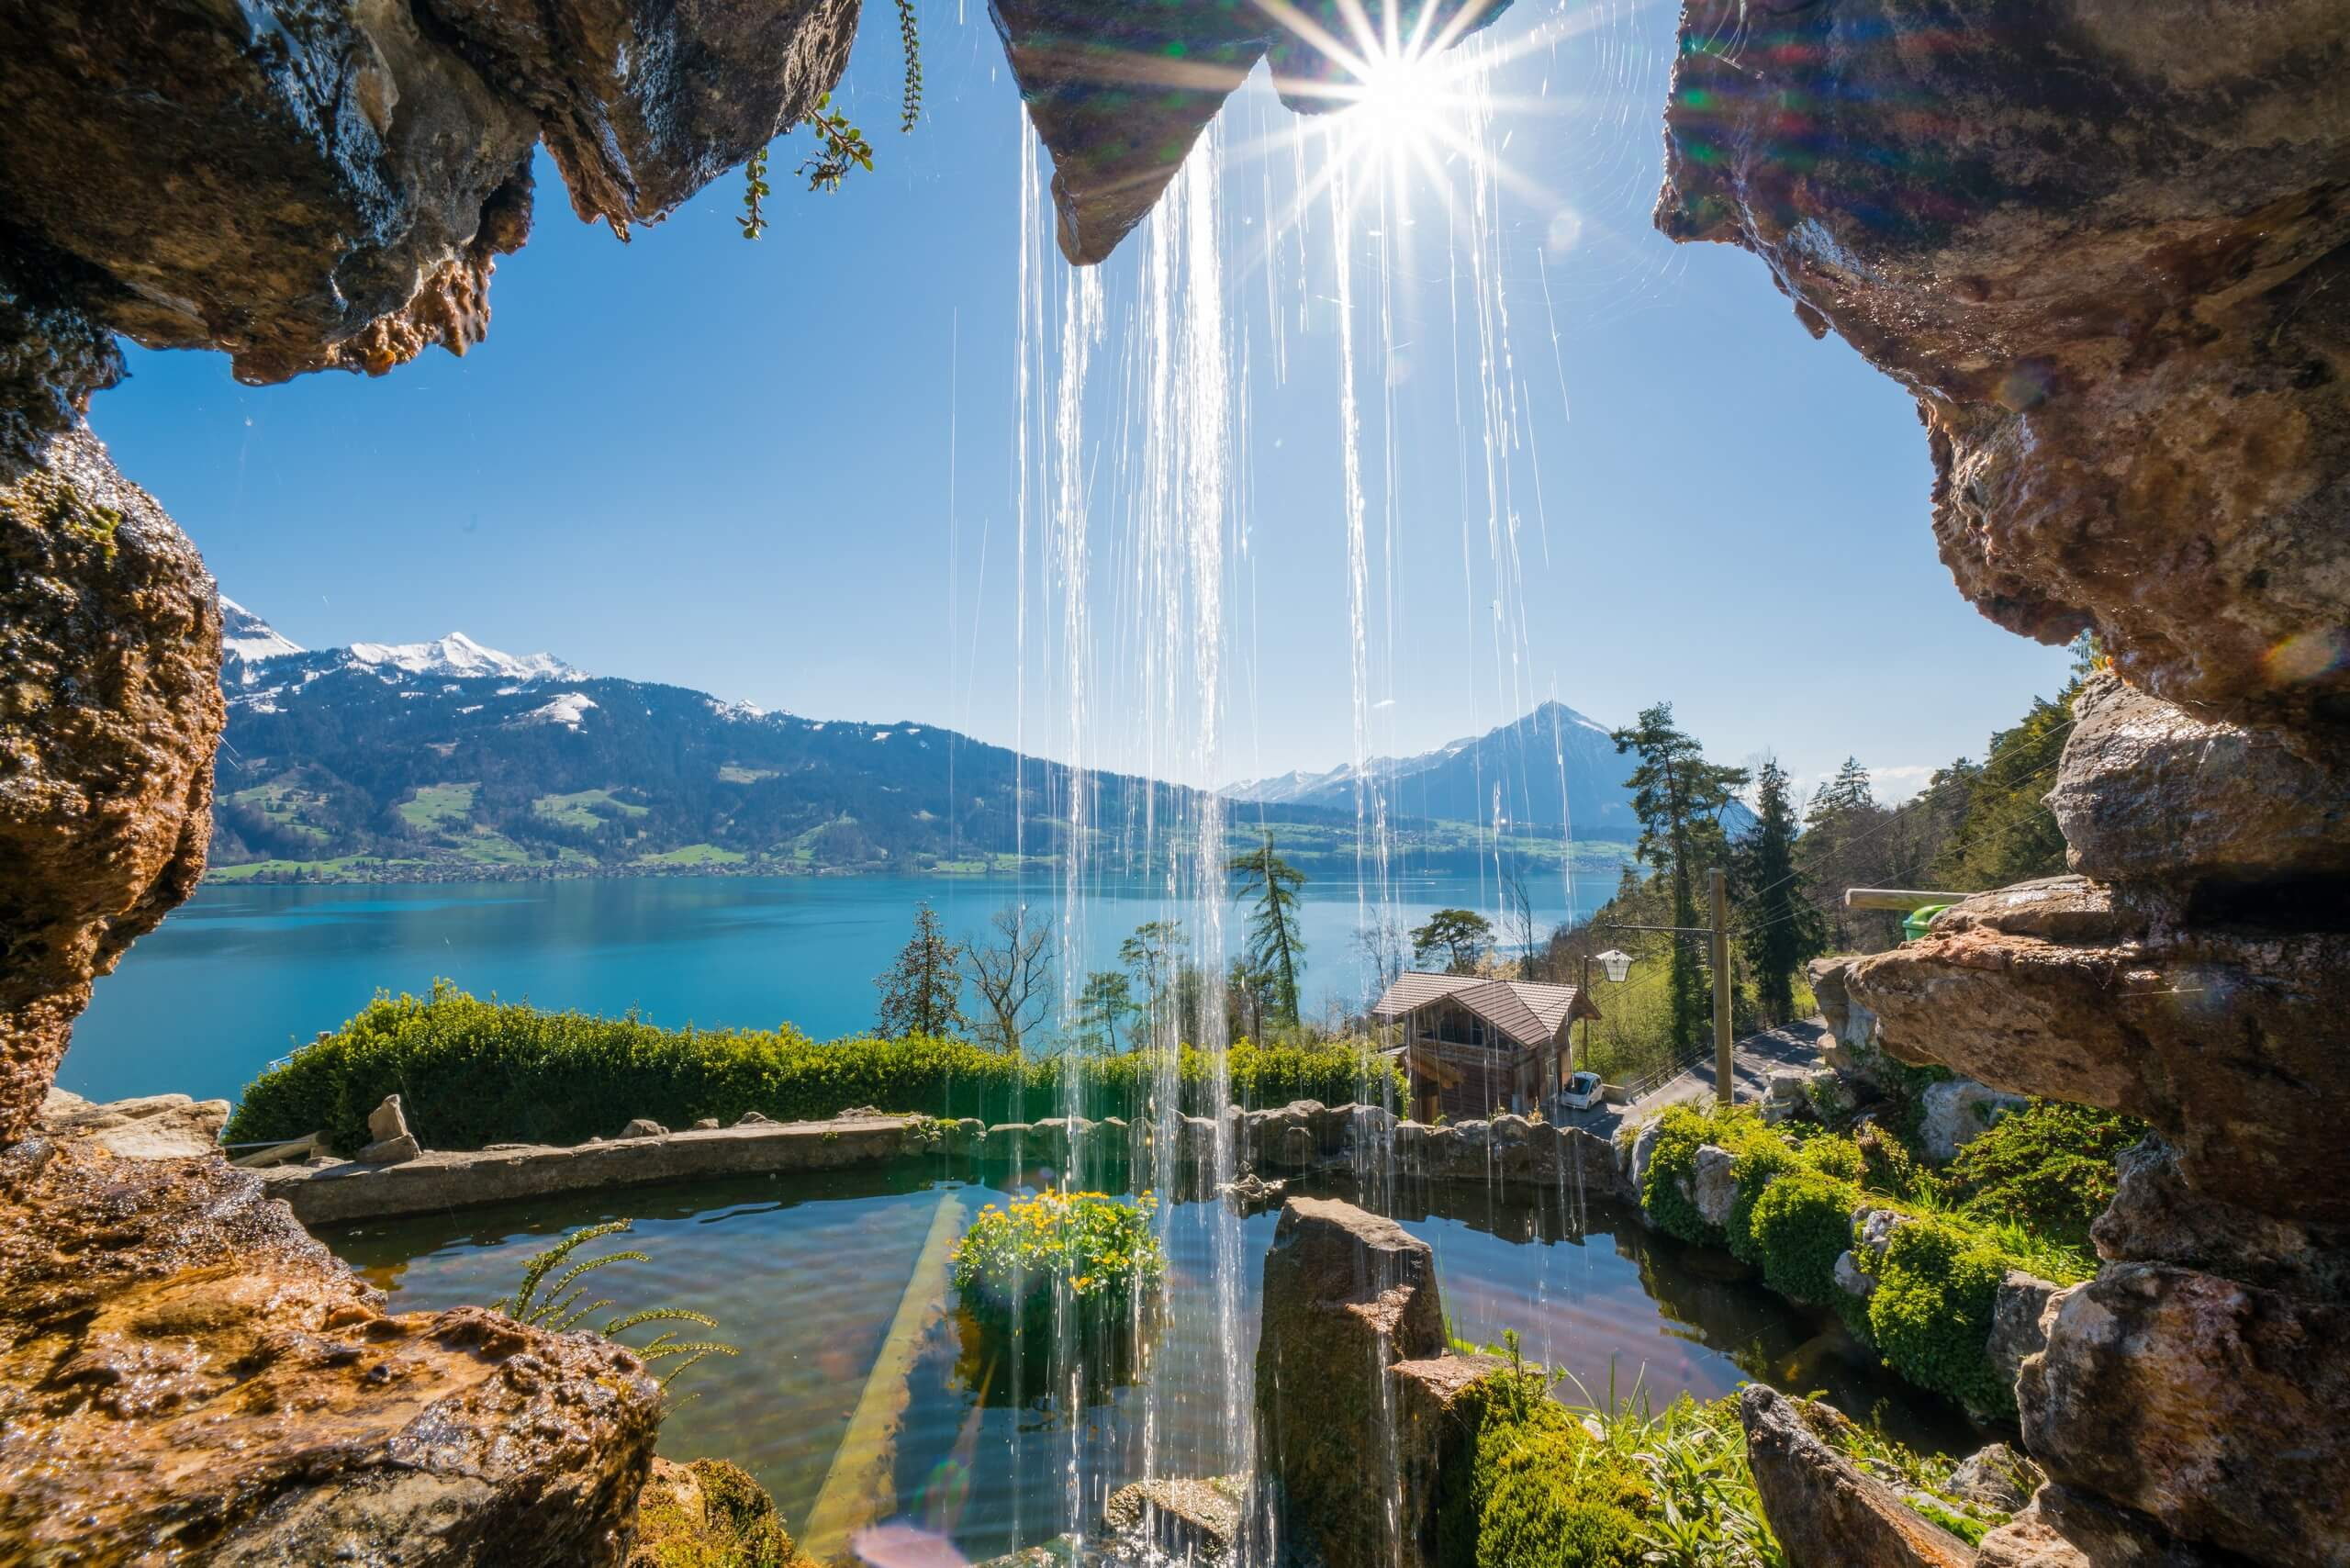 st-beatus-h-hlen-fr-hling-wasser-thunersee-berge